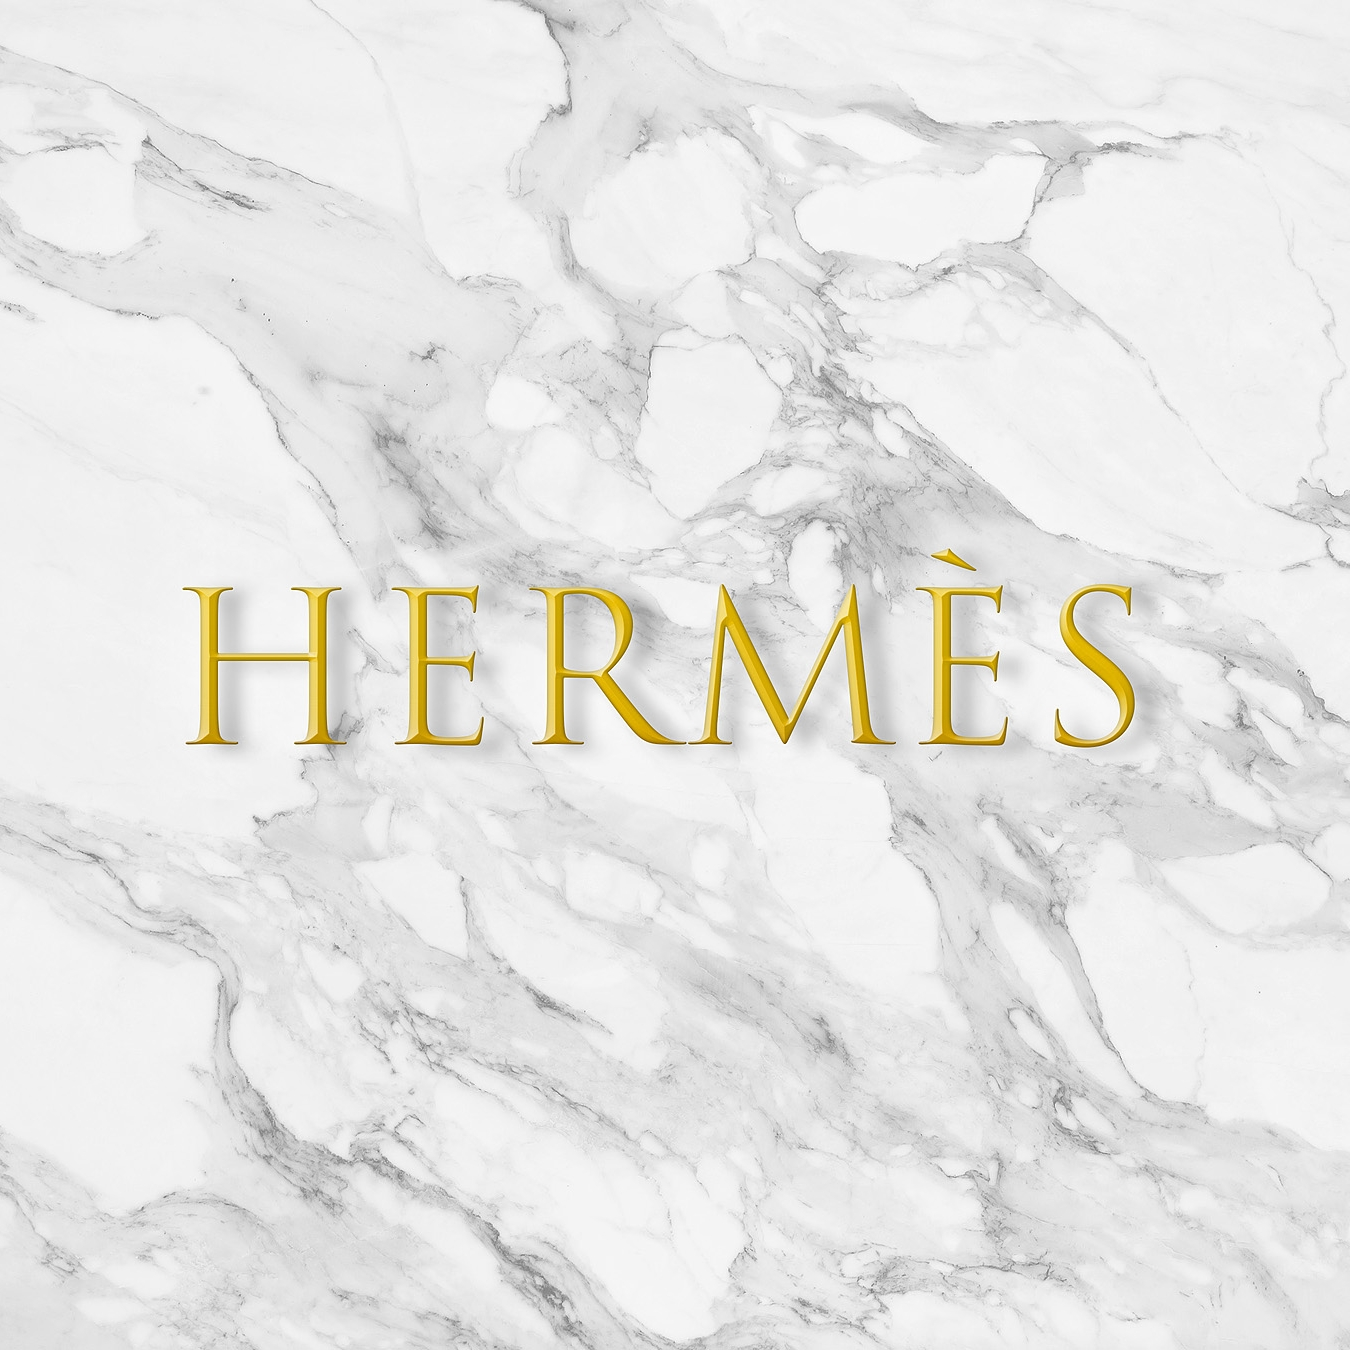 HERMES_Cover_v01_smaller.jpg